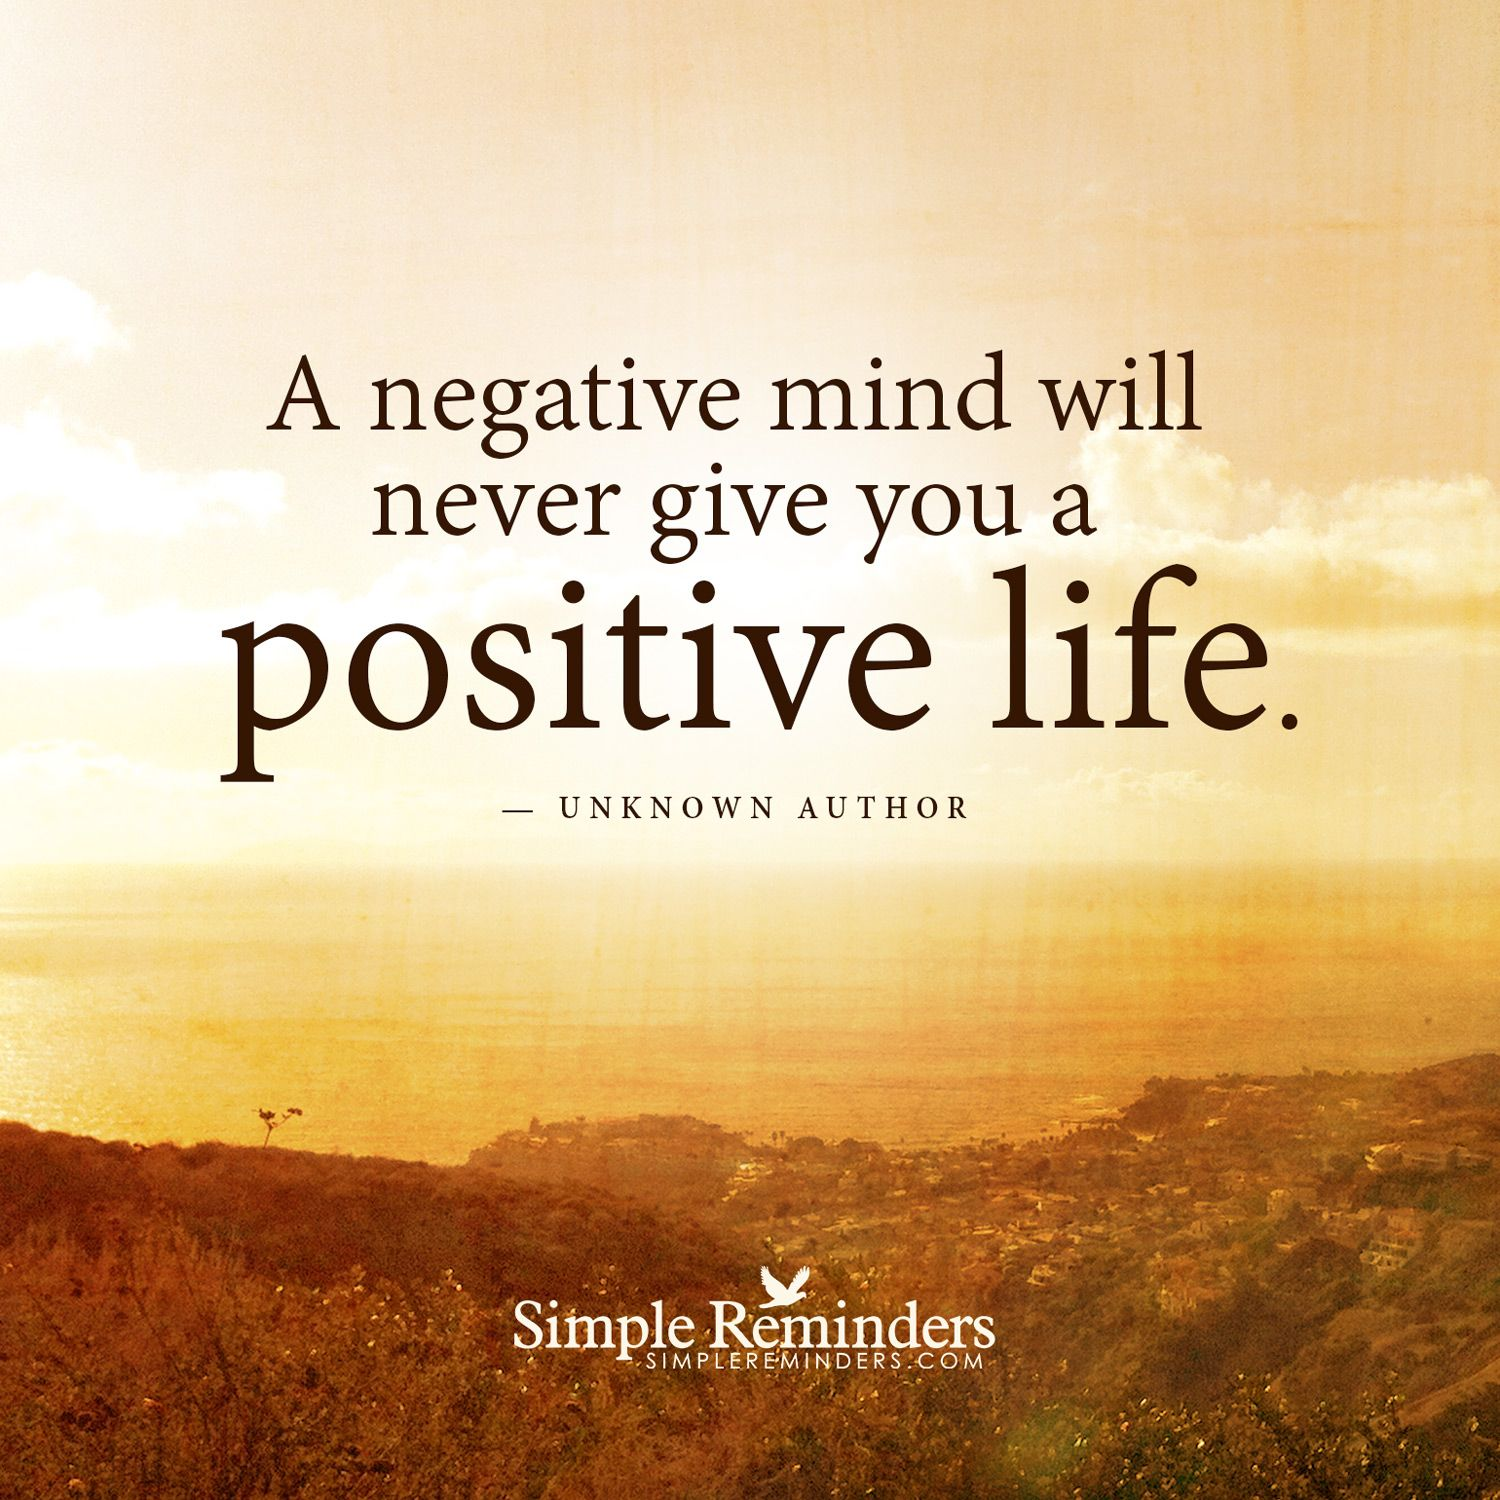 A negative mind will never give you a positive life ...